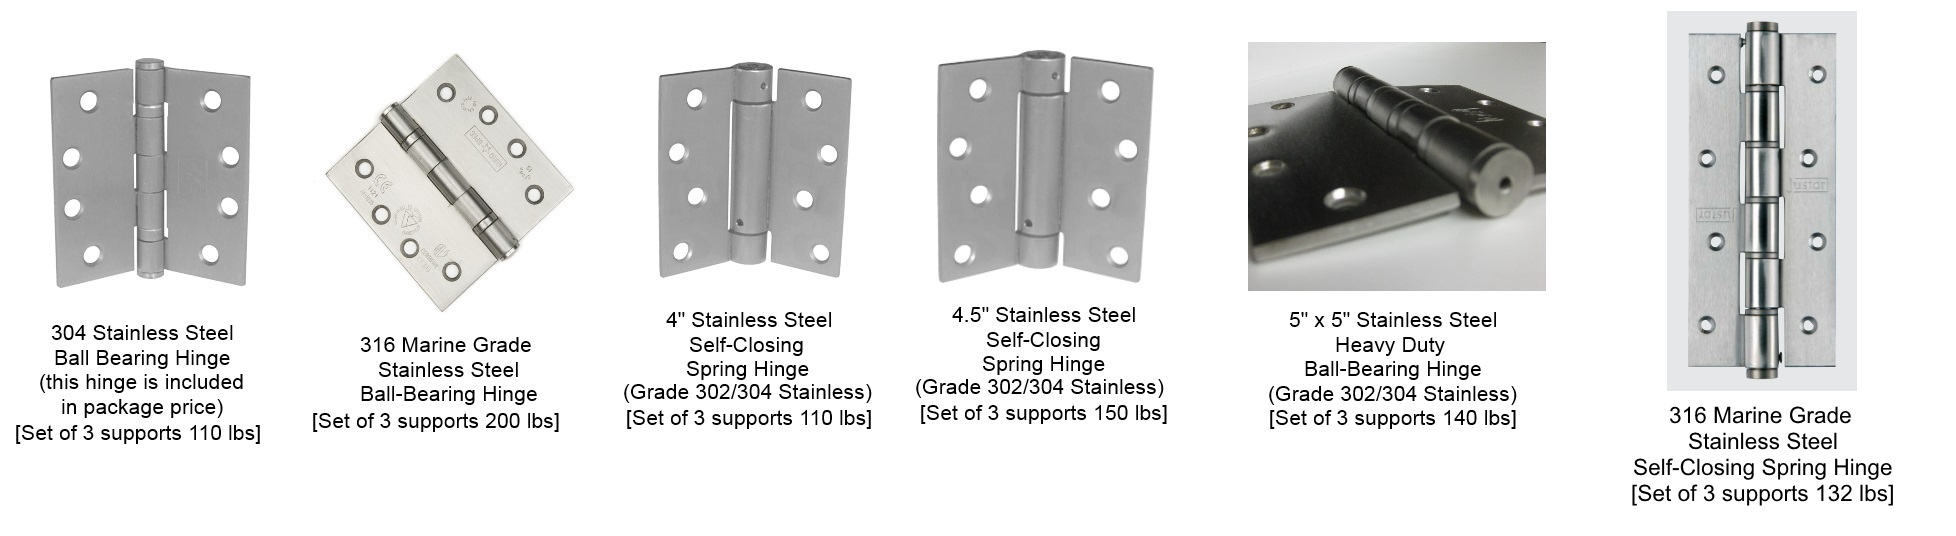 stainless-steel-hinge-options.jpg